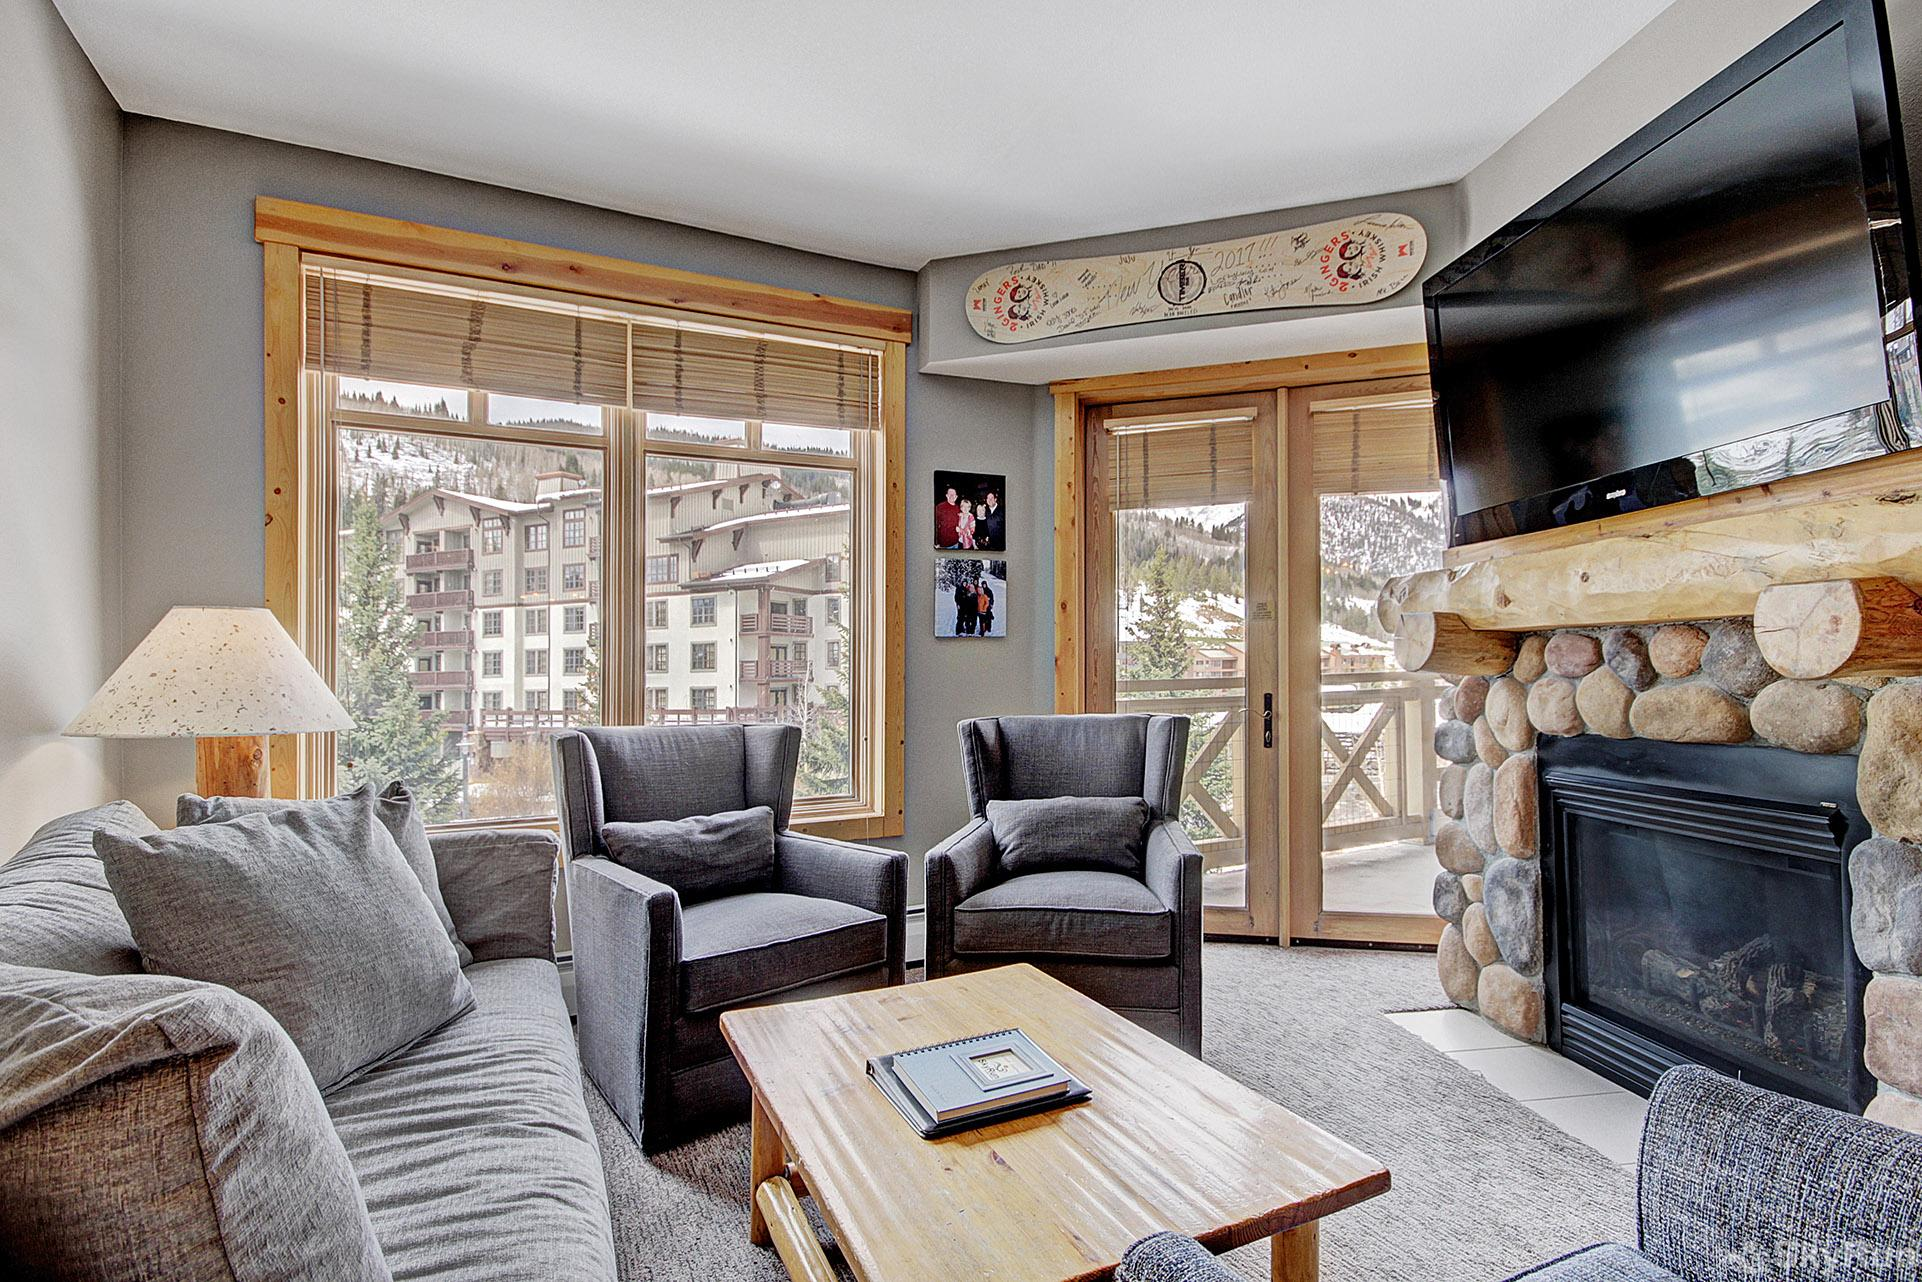 TM325 Tucker Mountain Relax in the Lovely Living Room